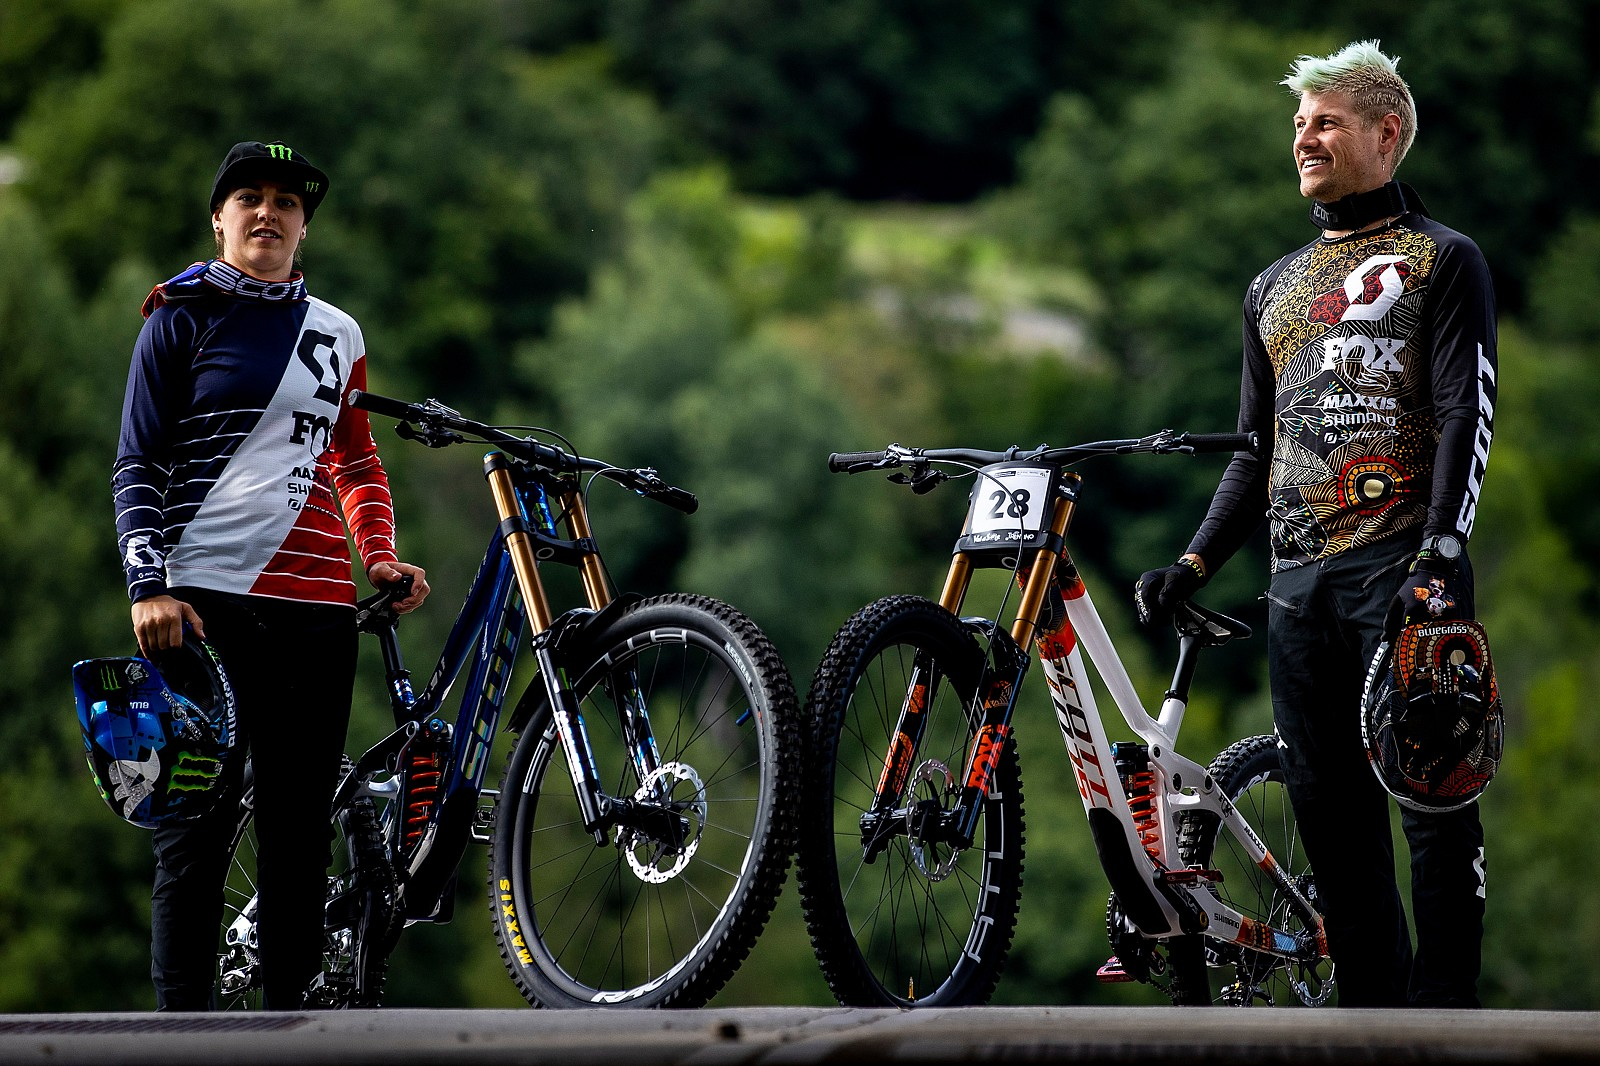 Marine Cabirou and Dean Lucas Show Off Their Scott Gamblers in Val di Sole - WORLD CHAMPS BIKES - Scott Factory Racing Gamblers - Mountain Biking Pictures - Vital MTB